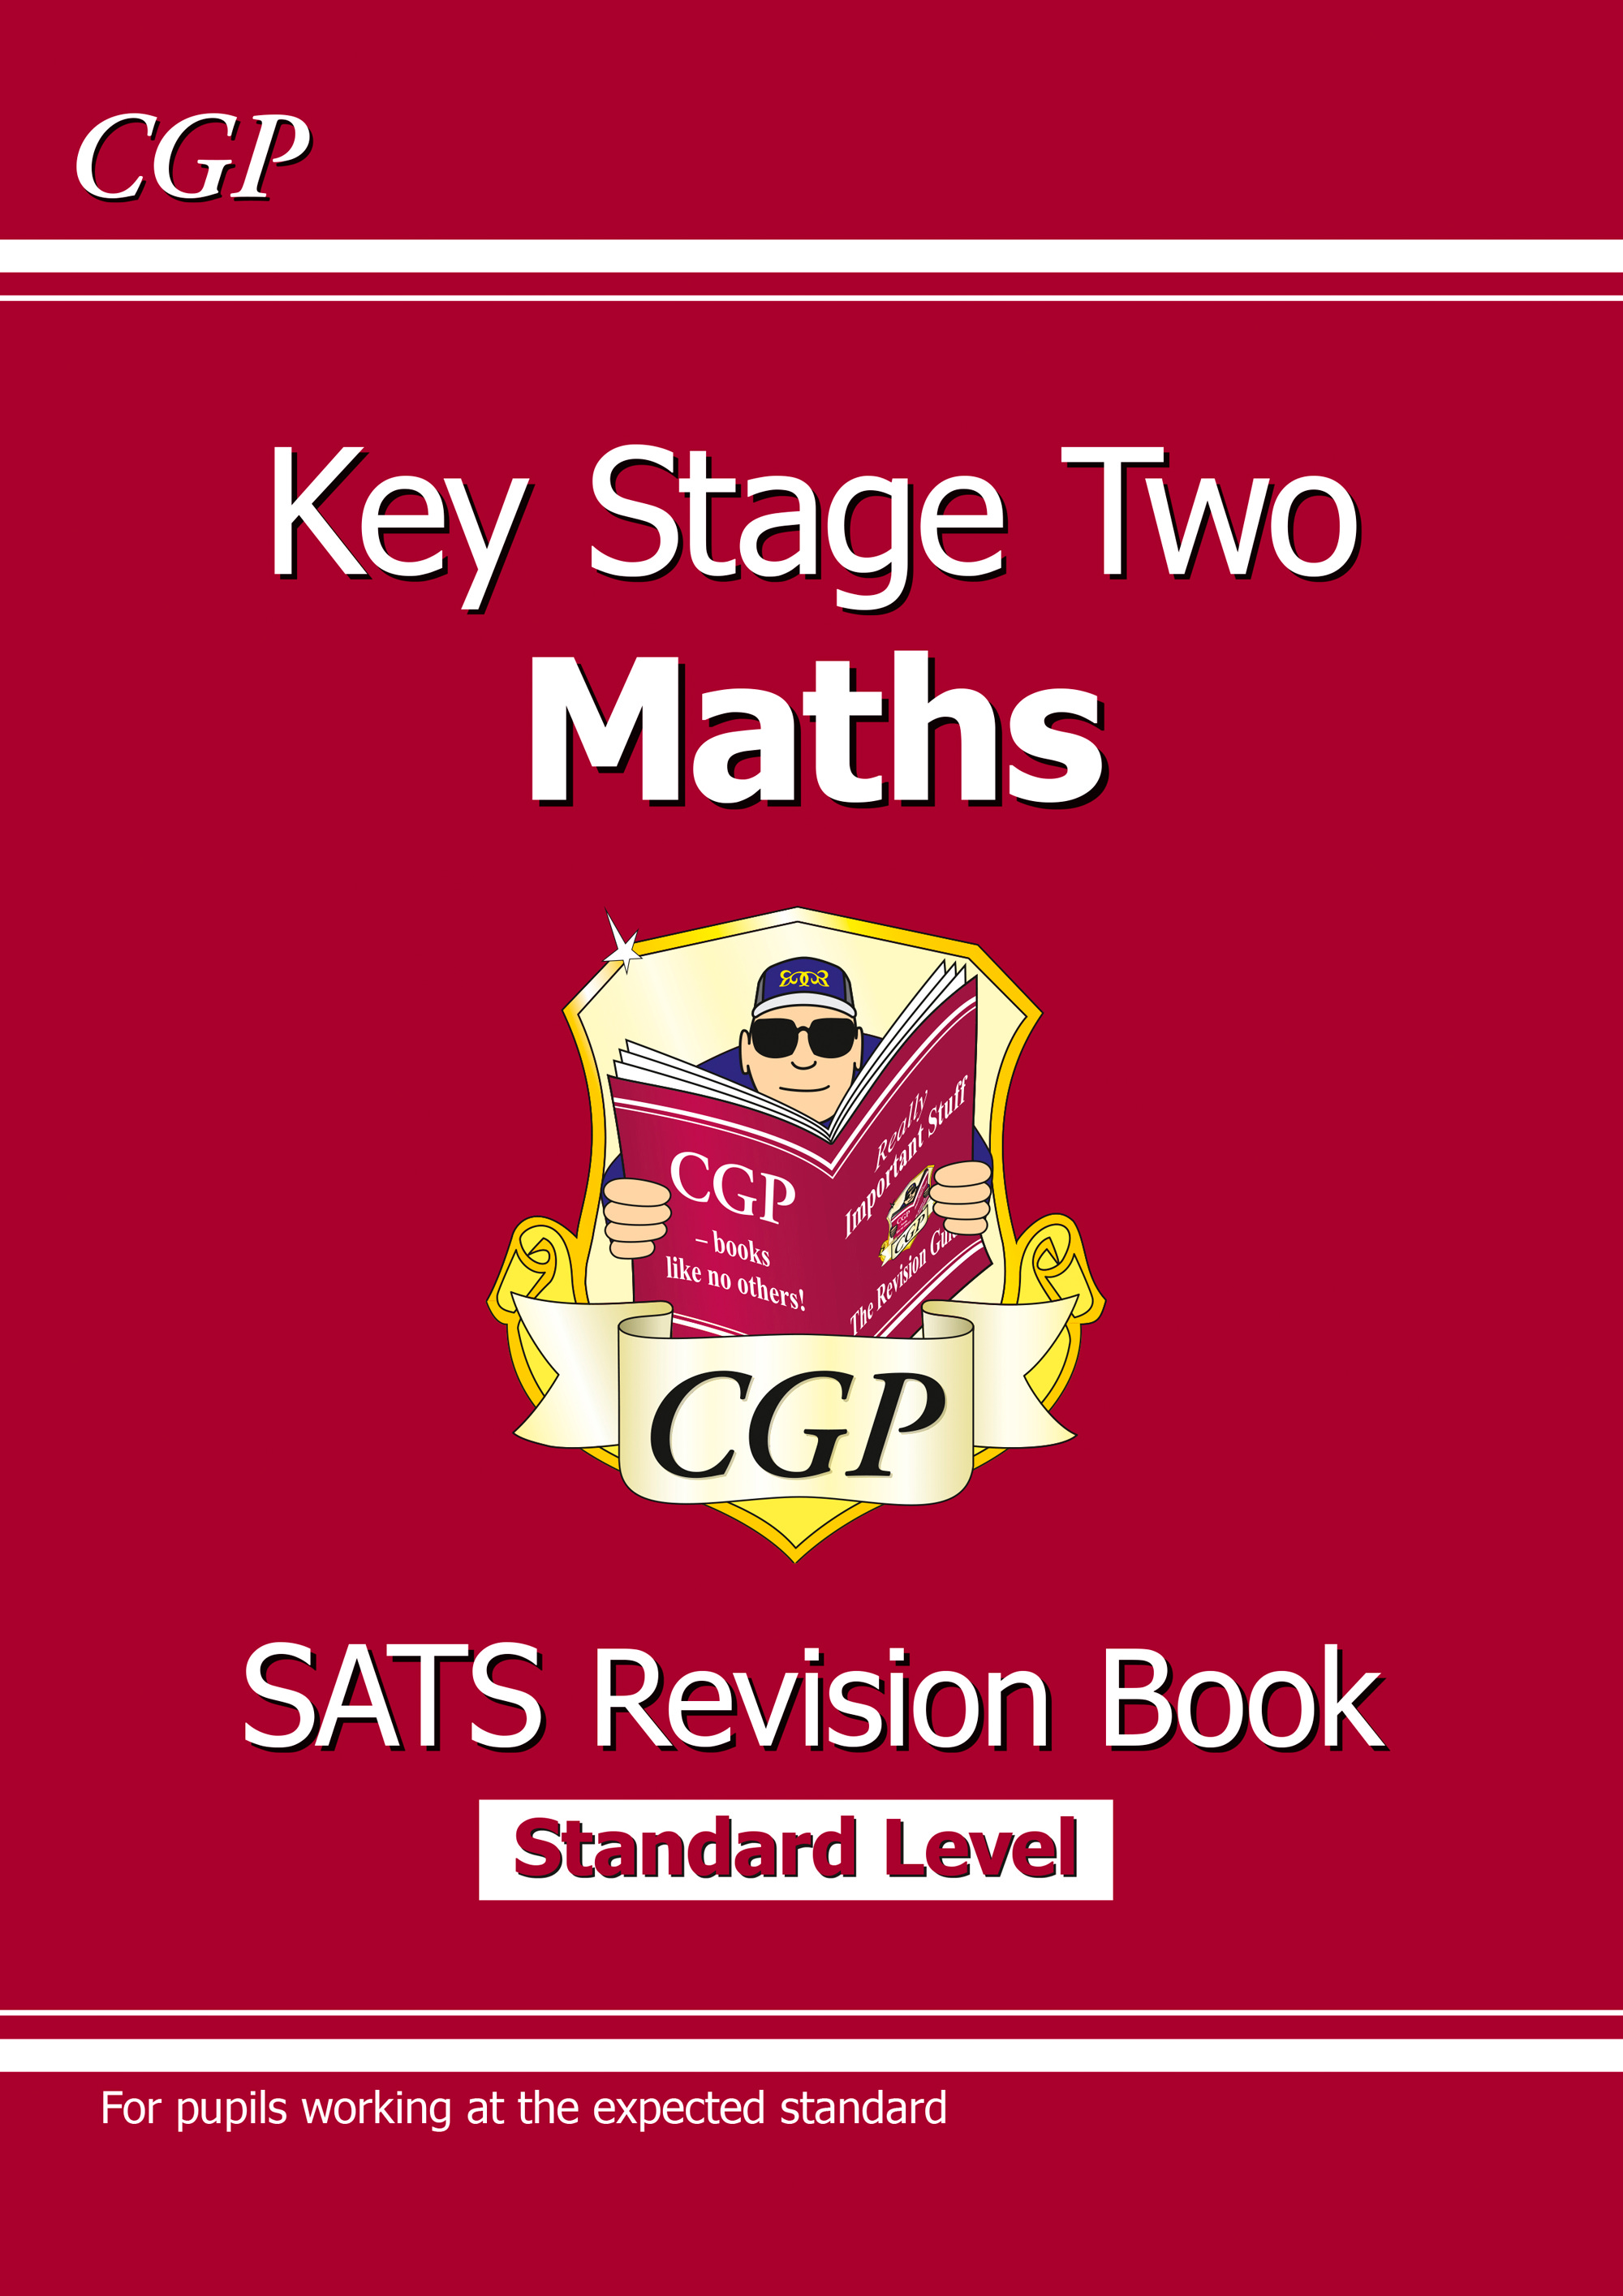 MLFR22DK - KS2 Maths Targeted SATs Revision Book - Standard Level (for tests in 2018 and beyond)